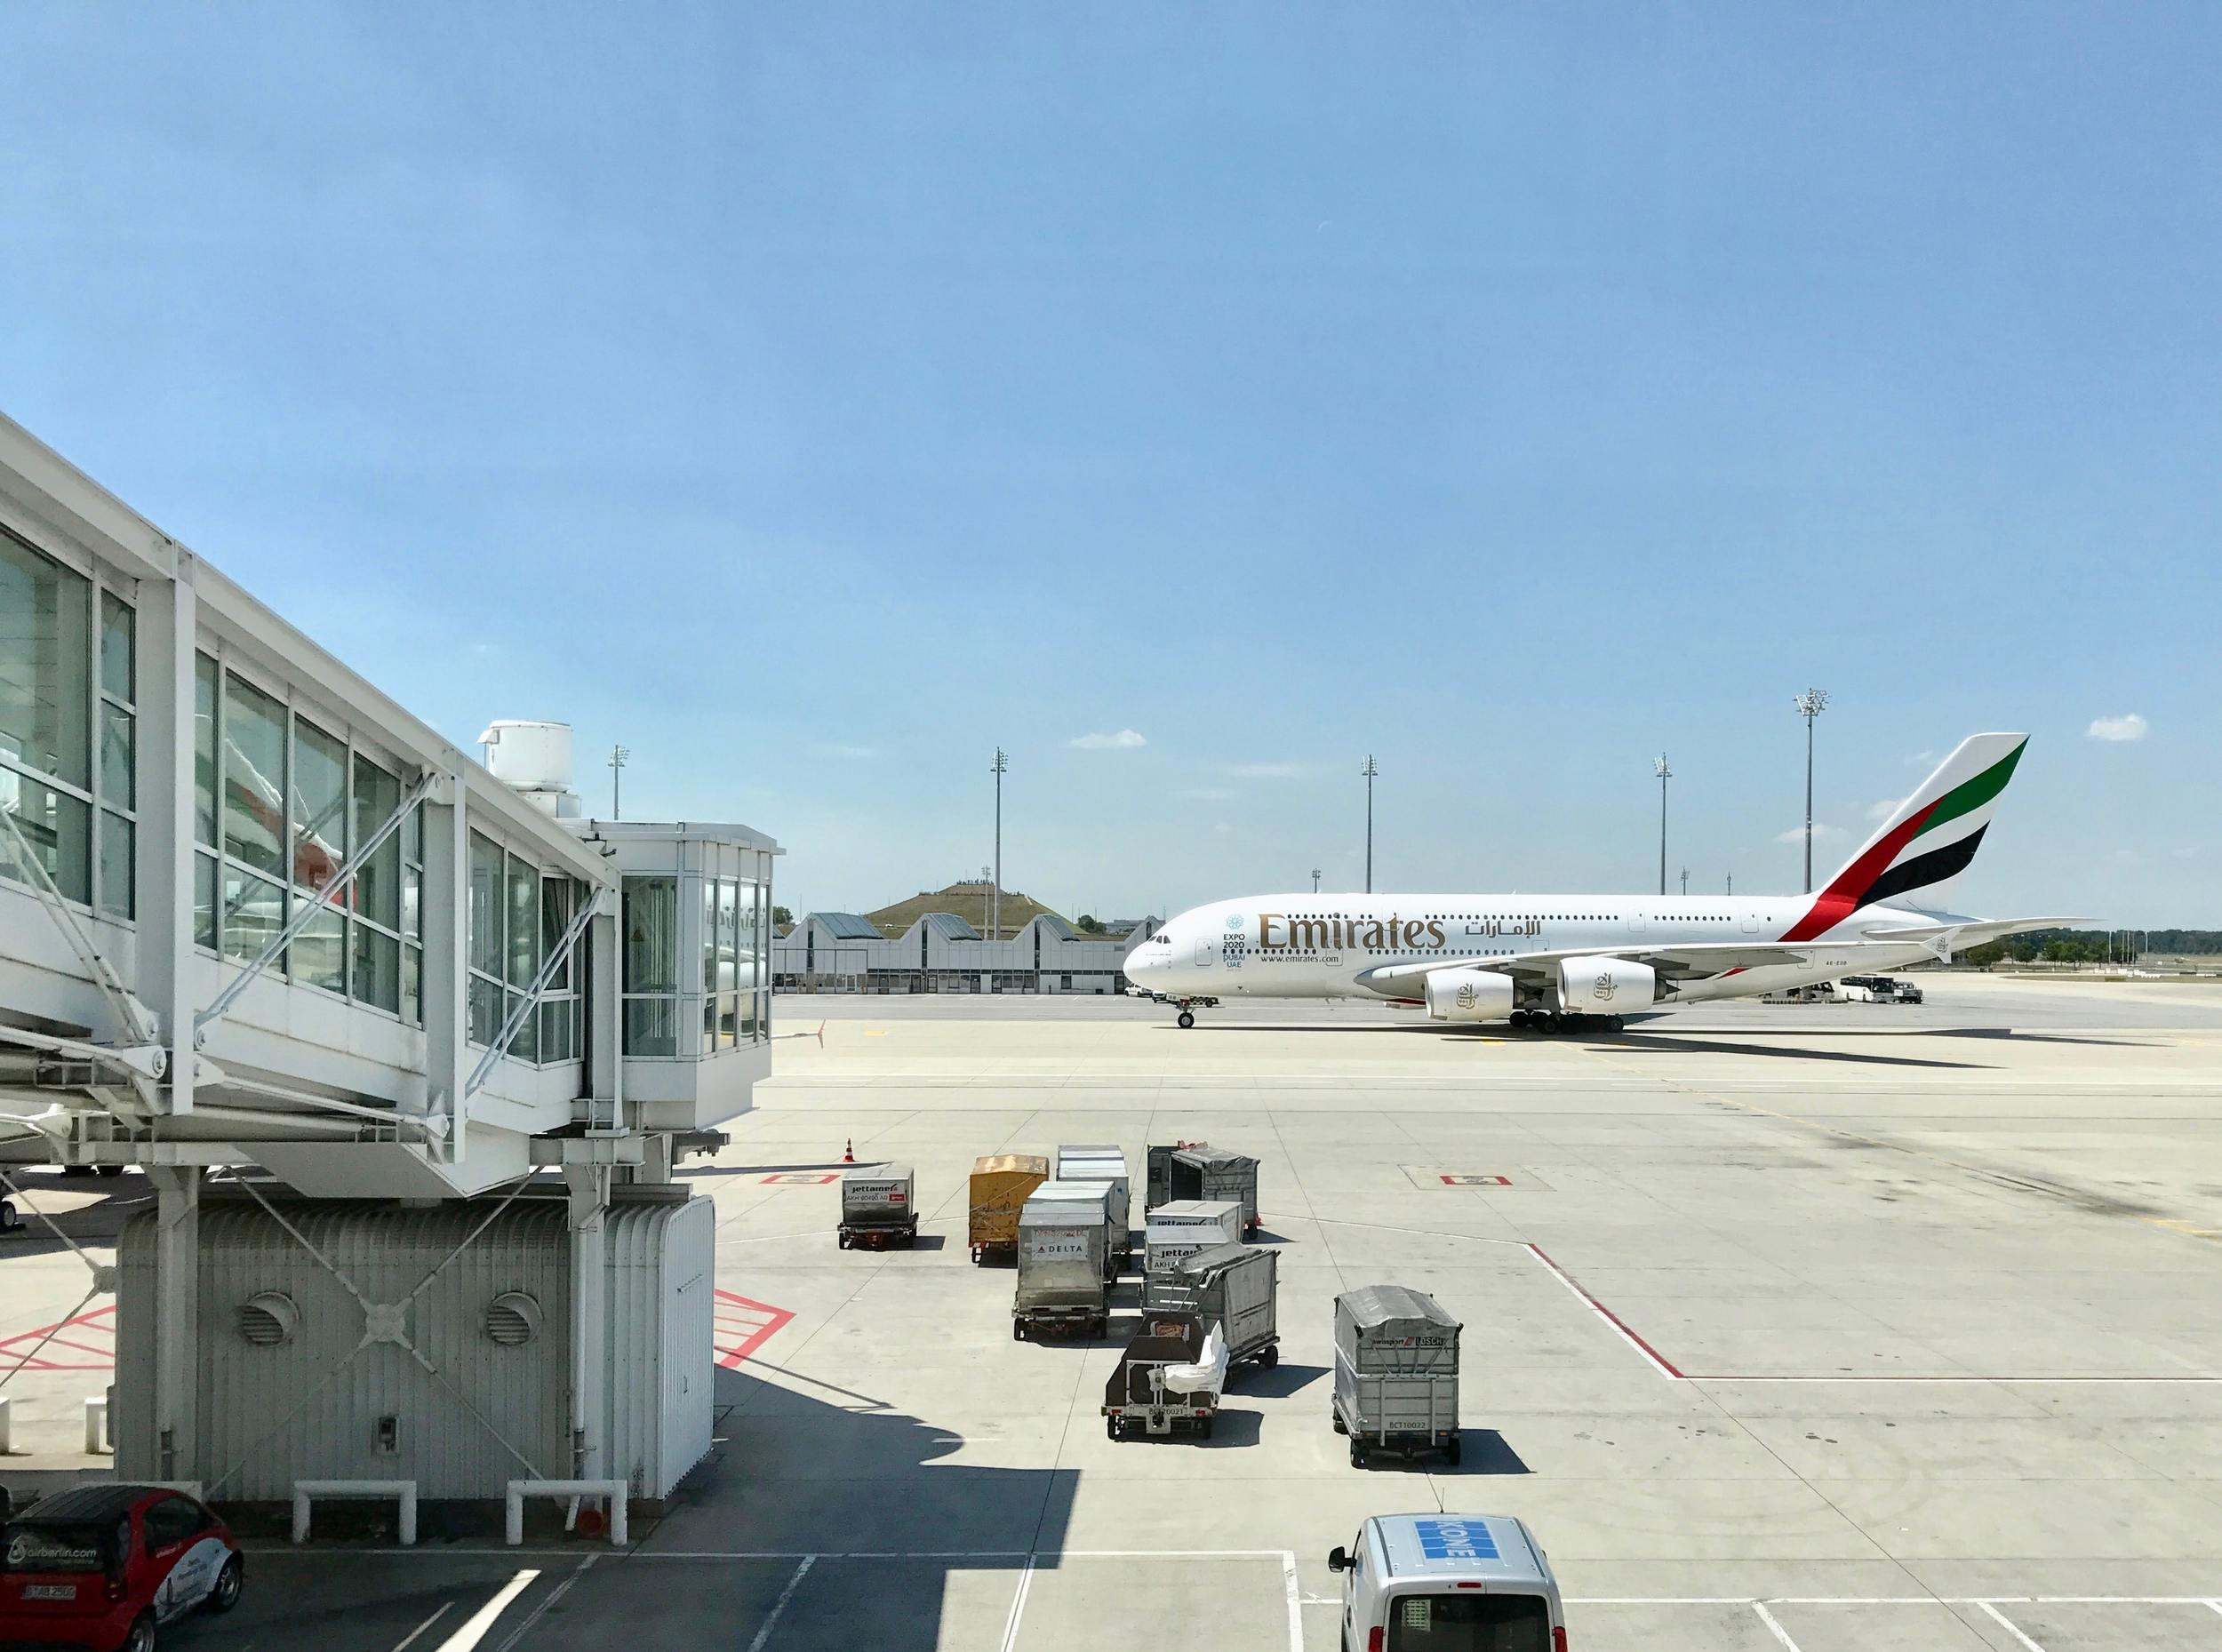 How to Change Flights or Get Refunds on Emirates